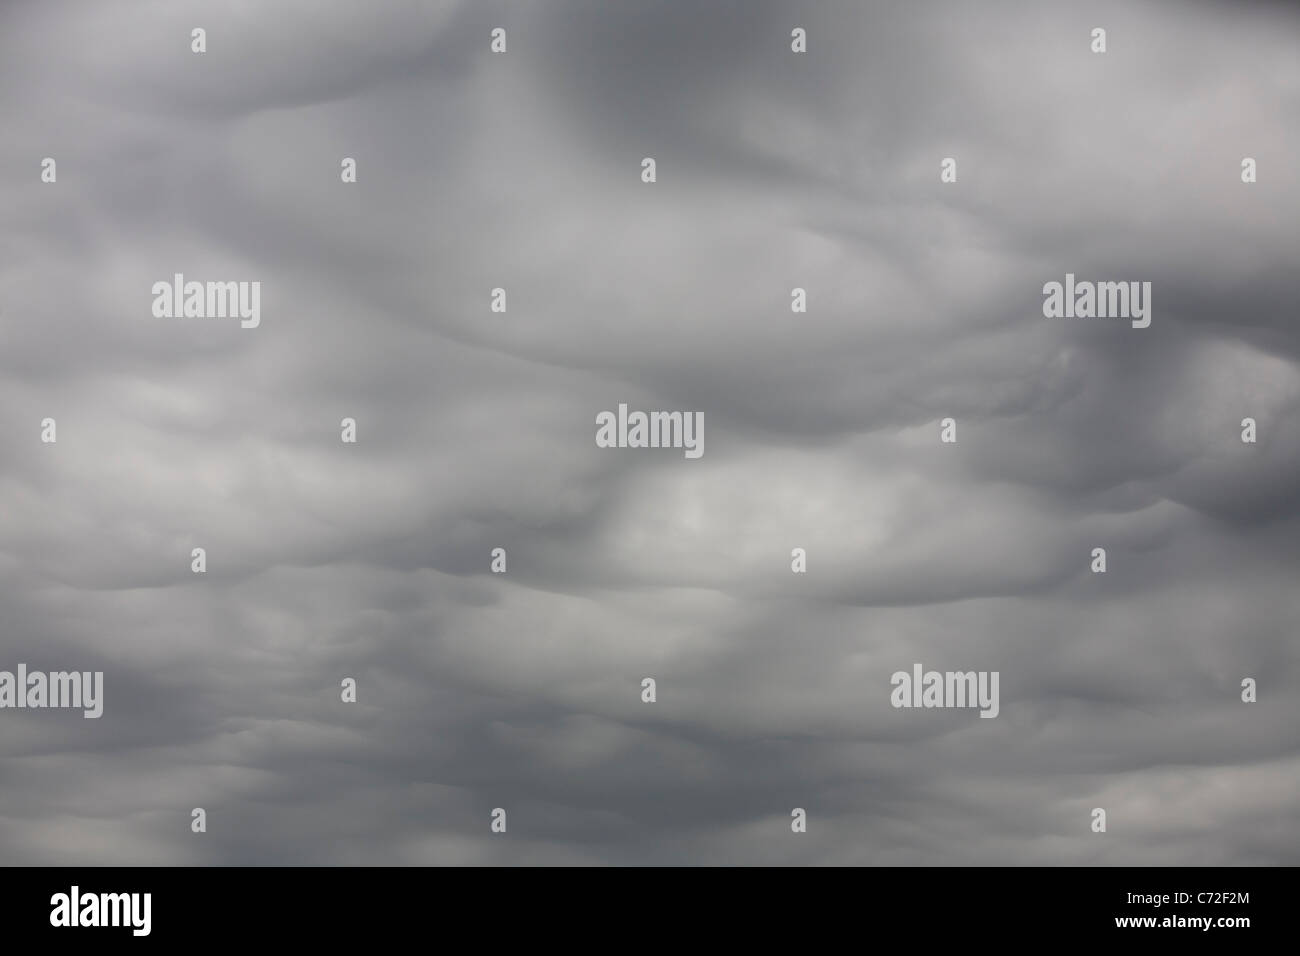 Cloud on an occluded front. - Stock Image